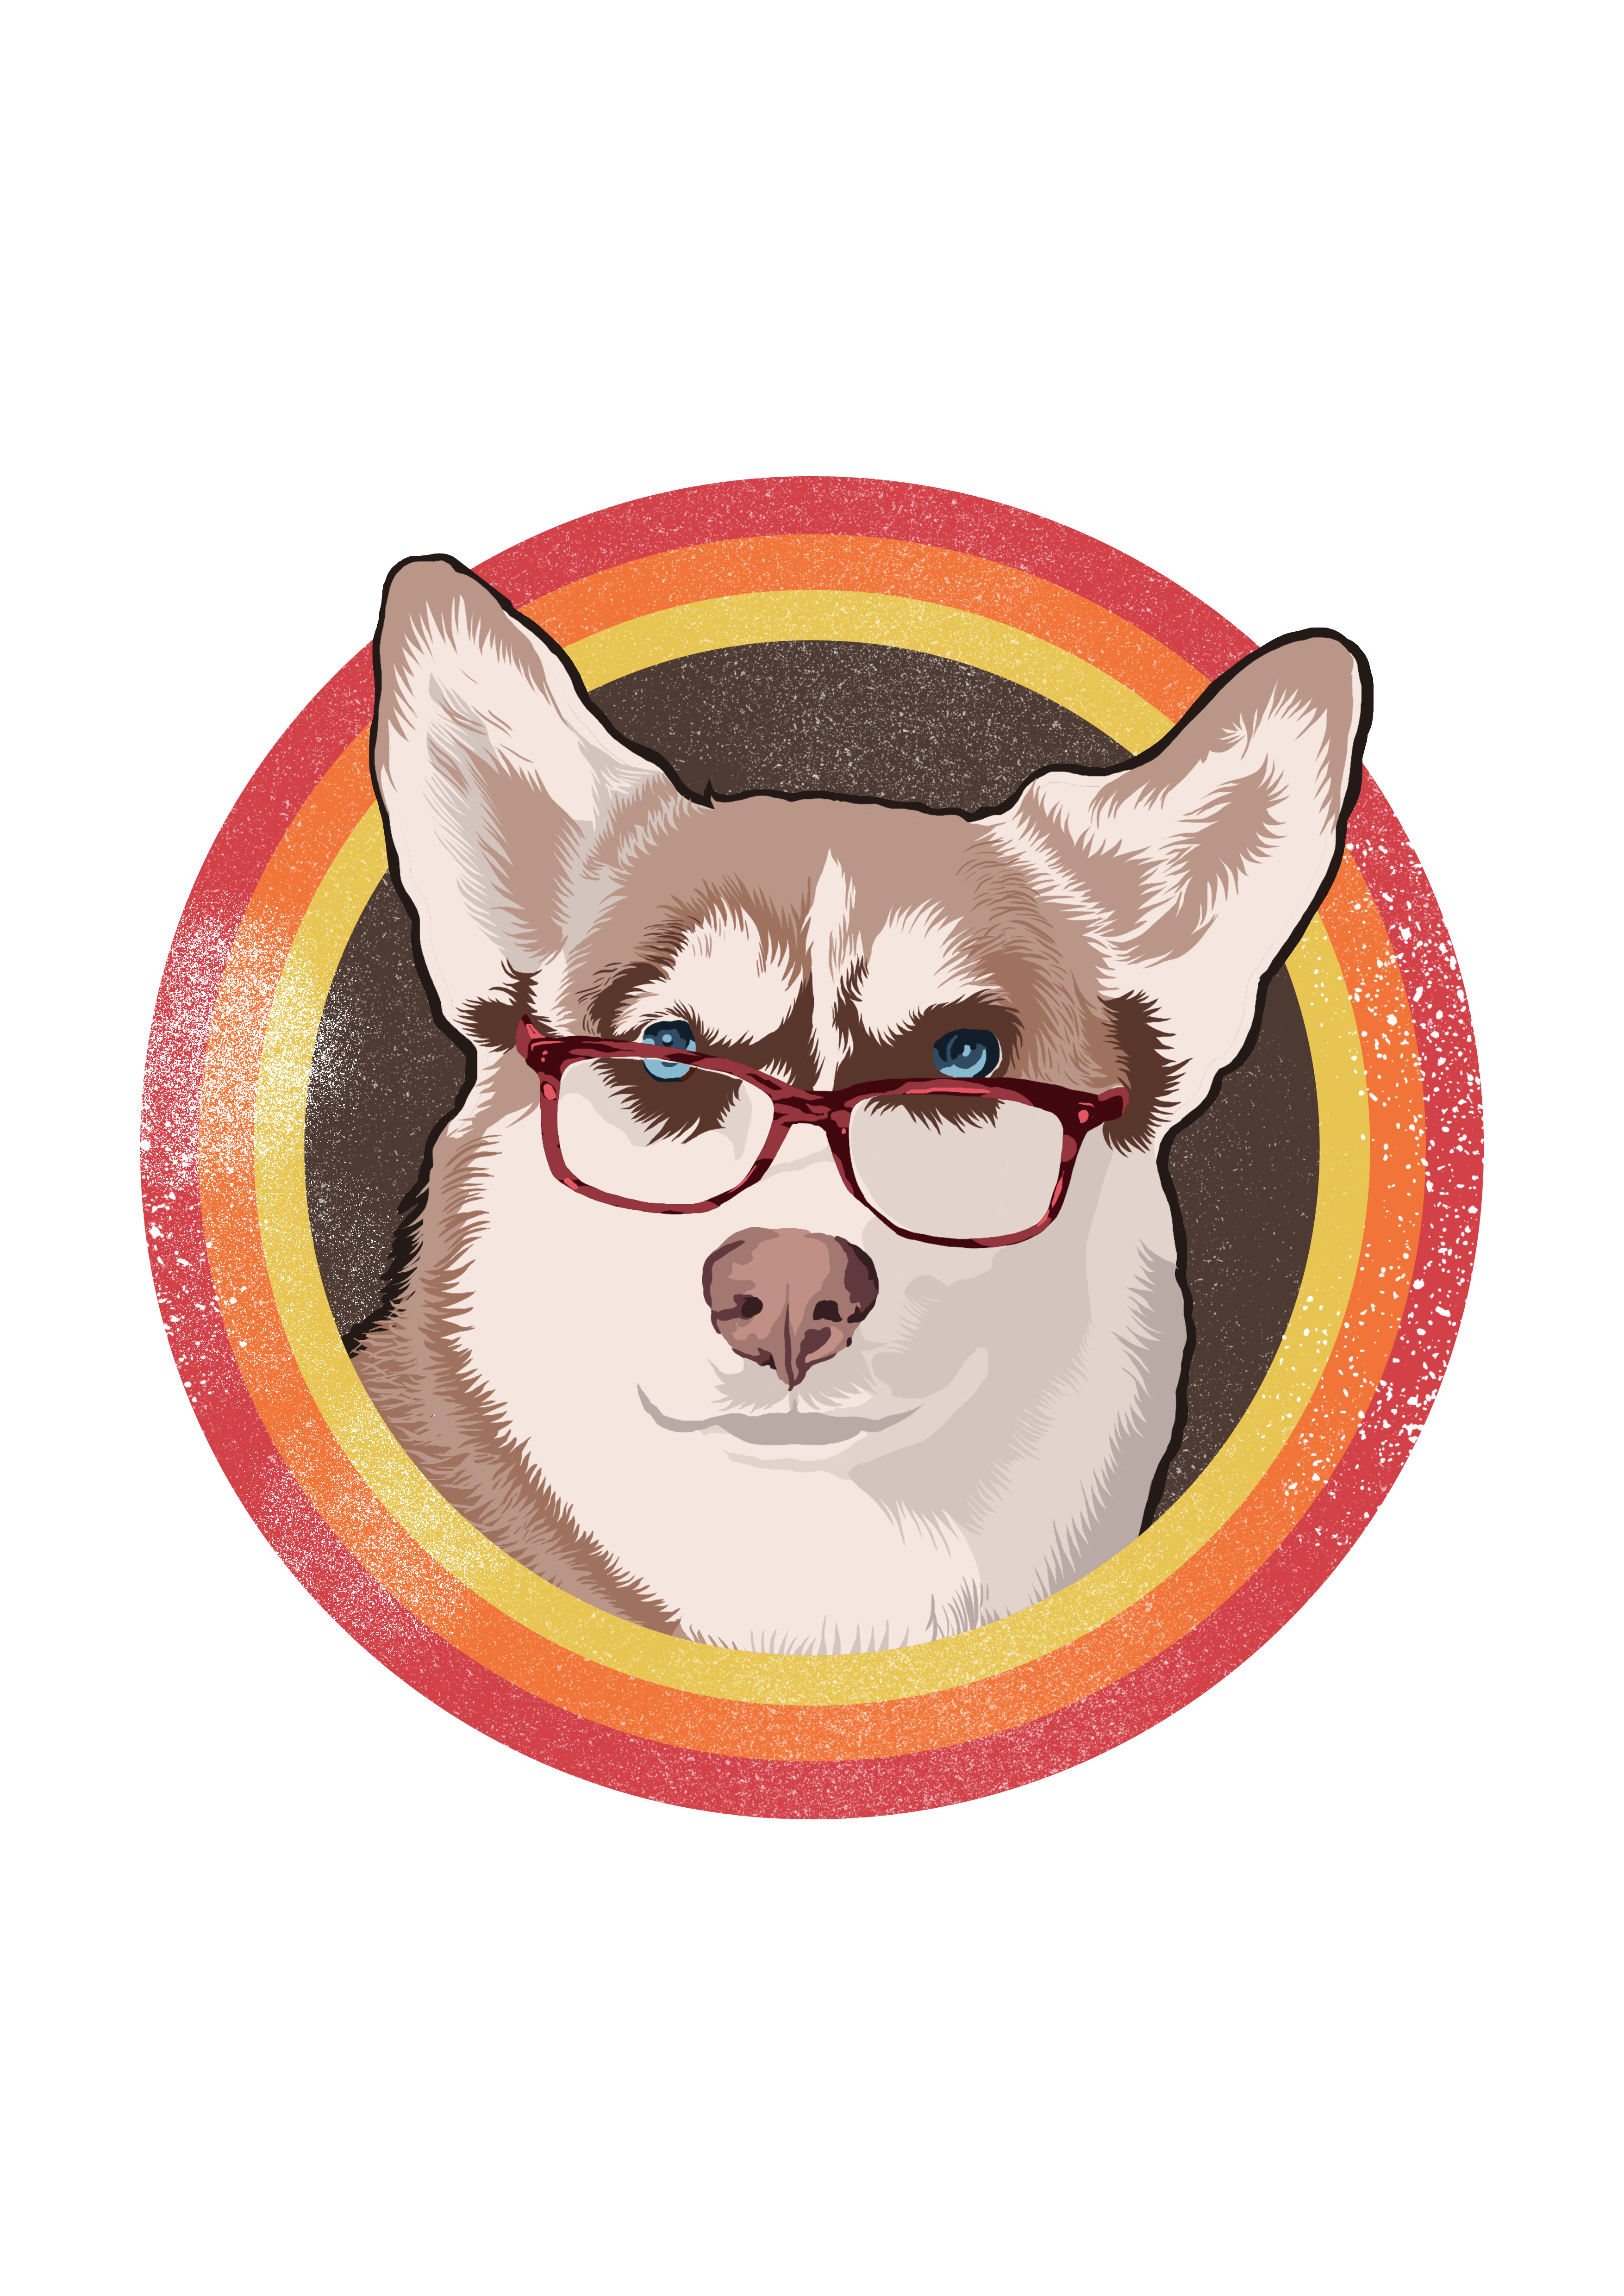 Retro Shirt Design of Dog With Glasses On